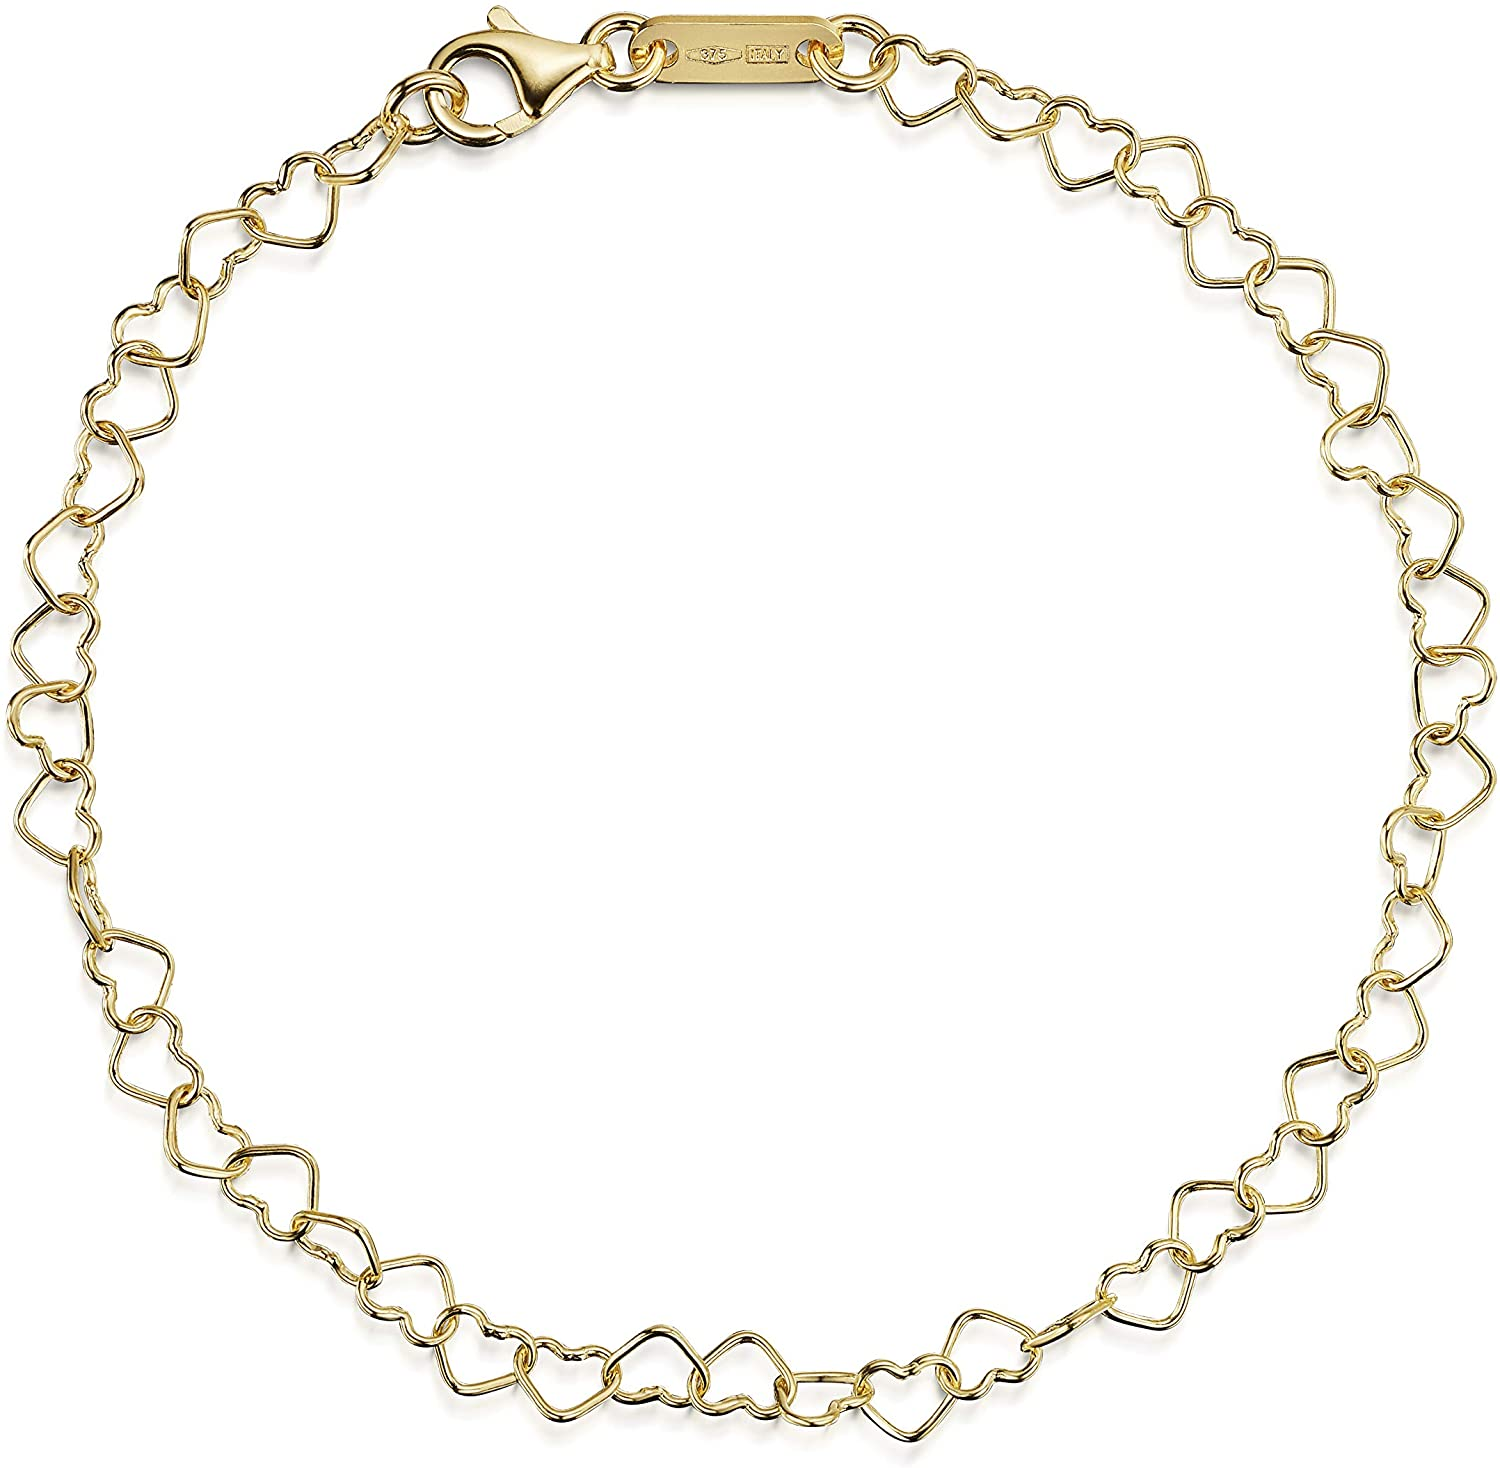 Amberta 9ct Genuine 375 Gold - Joined Hearts Chain Bracelet for Women - Various Styles - Adjustable up to 7.5 inch / 19 cm